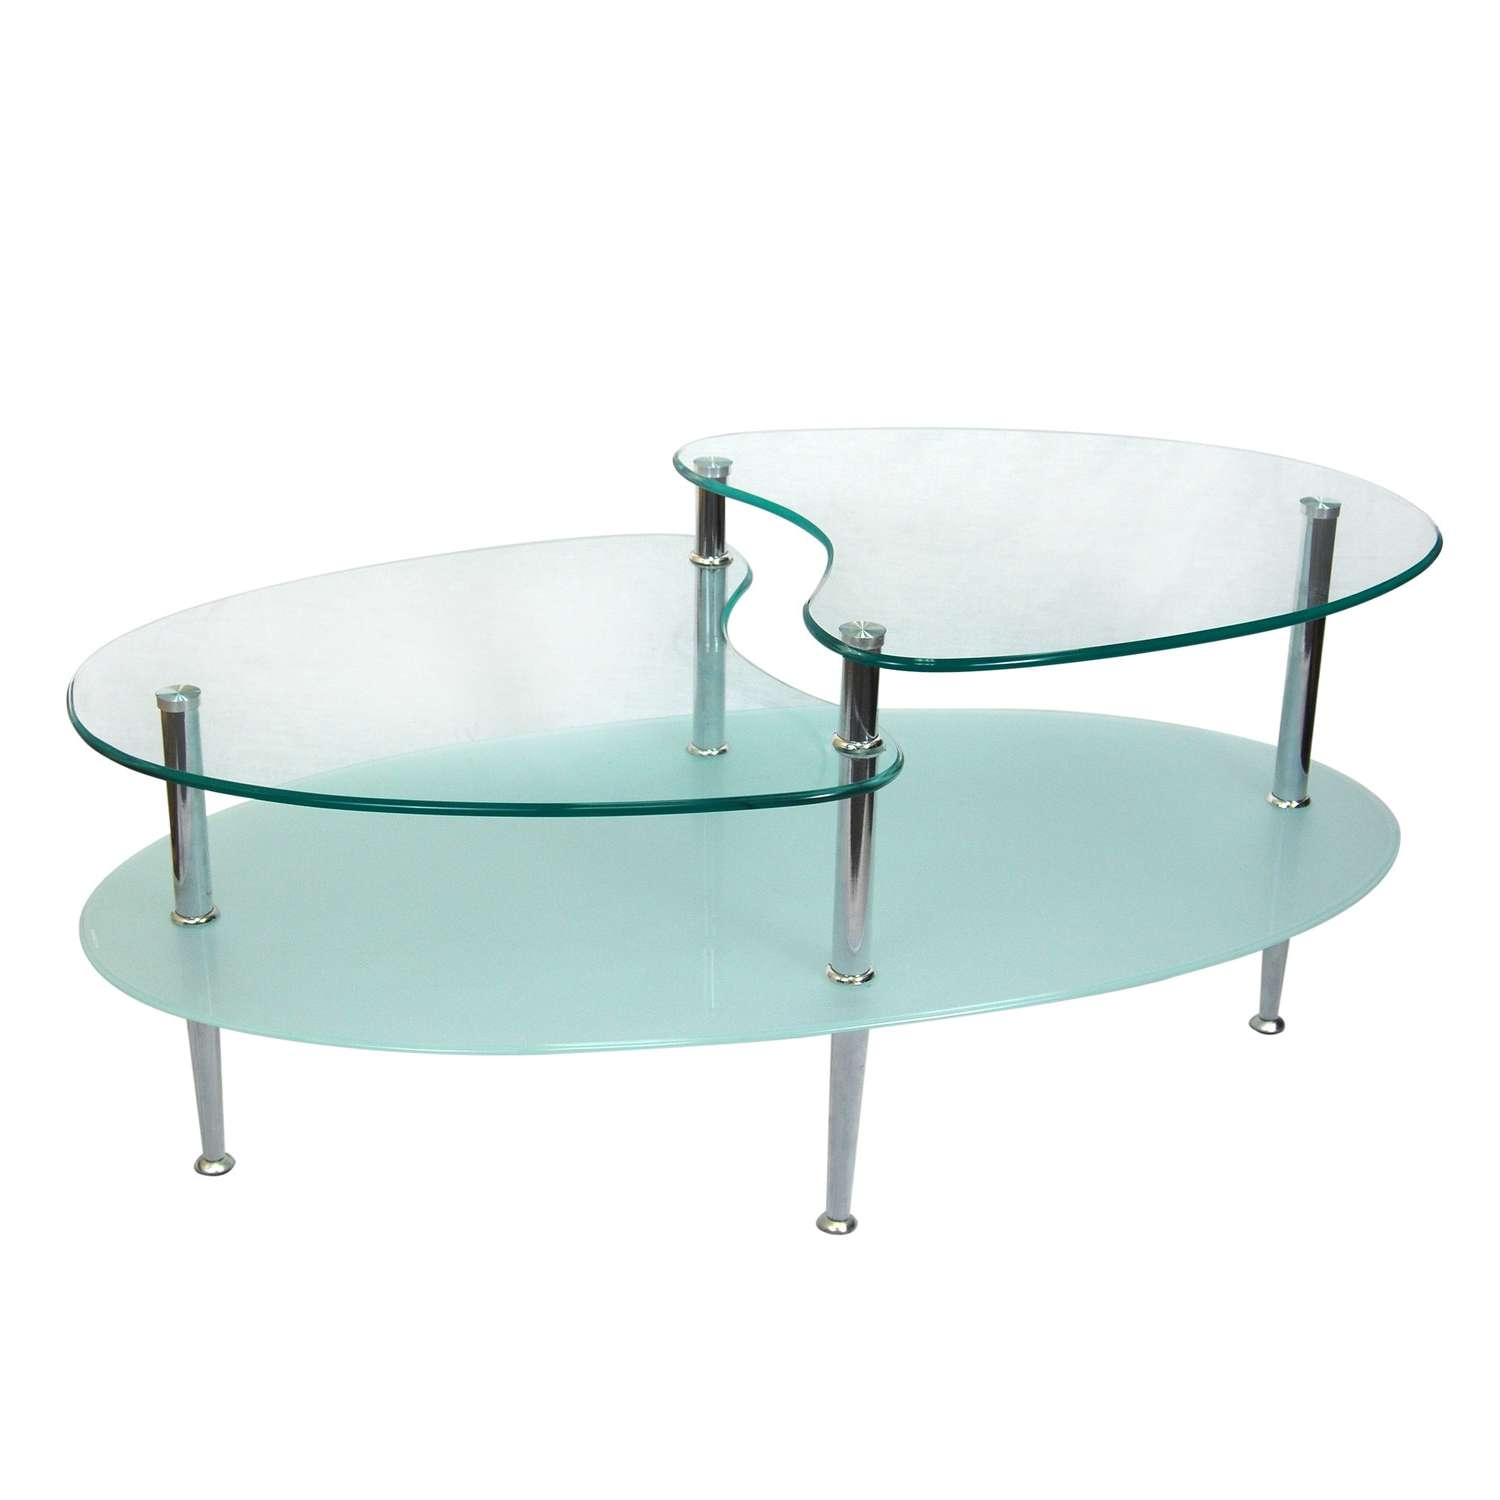 Decorations : Unique Oval Coffee Tables Wayfair With Stailess Base Regarding Preferred Wayfair Glass Coffee Tables (View 8 of 20)